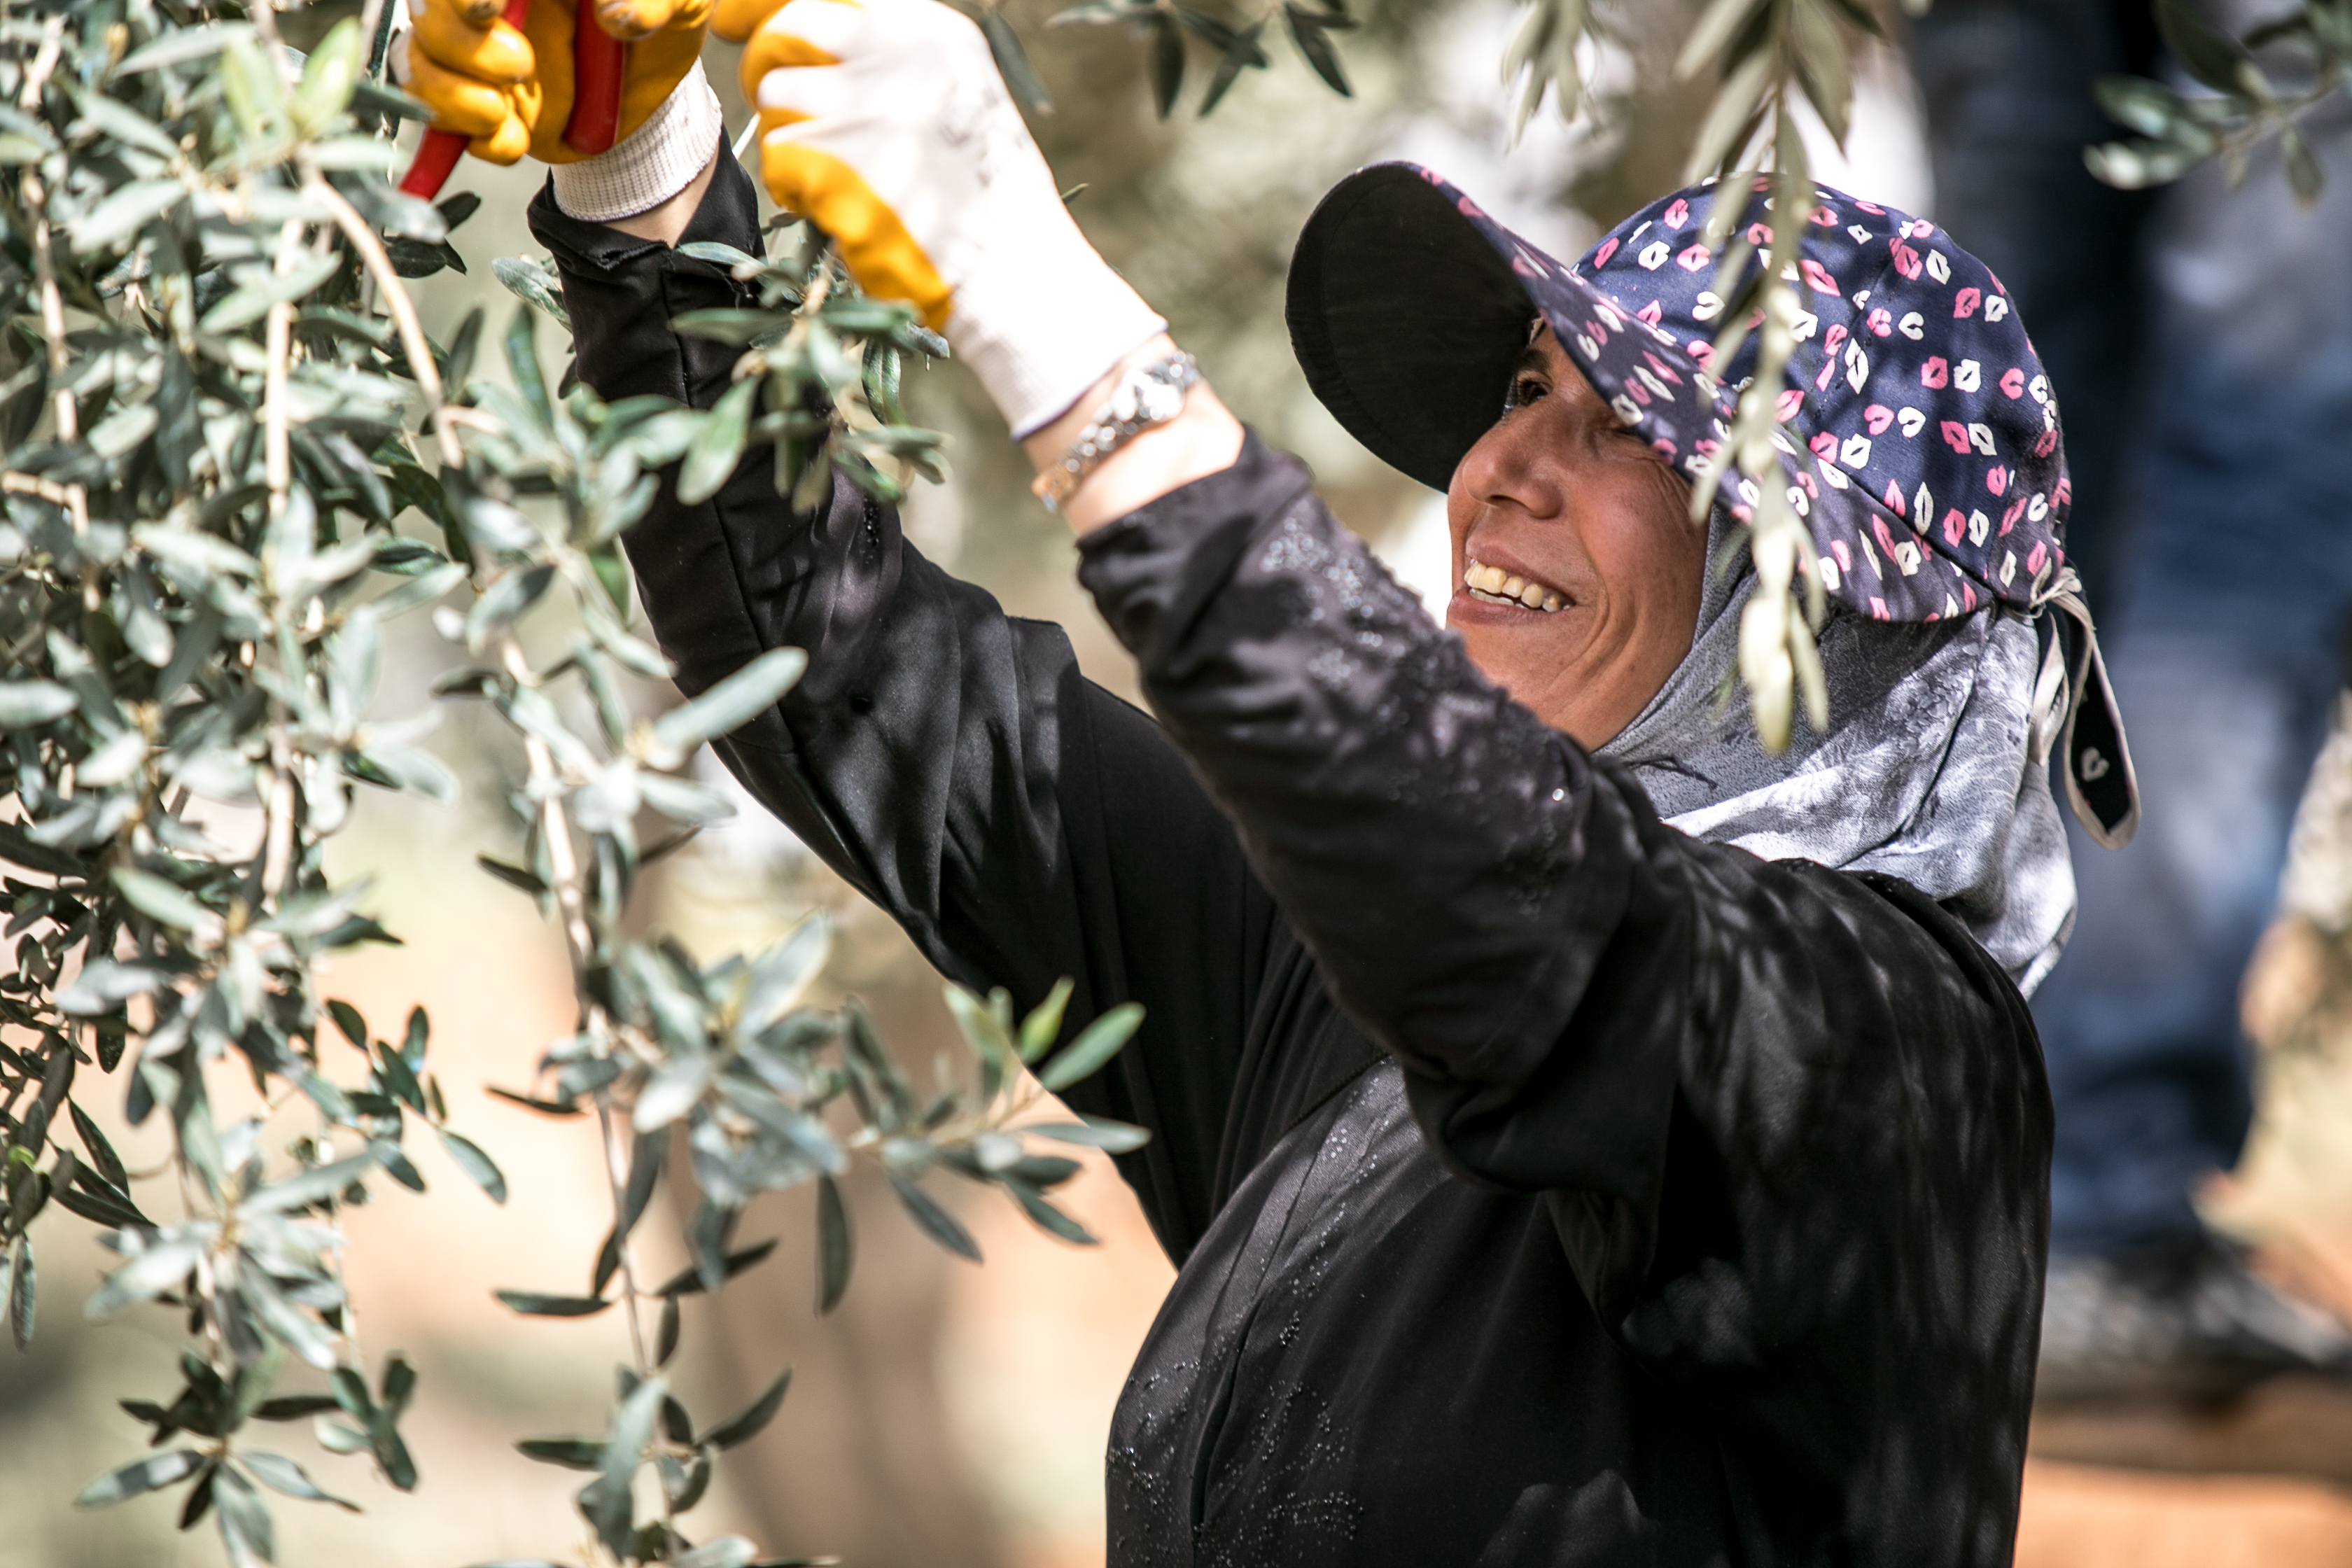 A woman pruning an olive tree